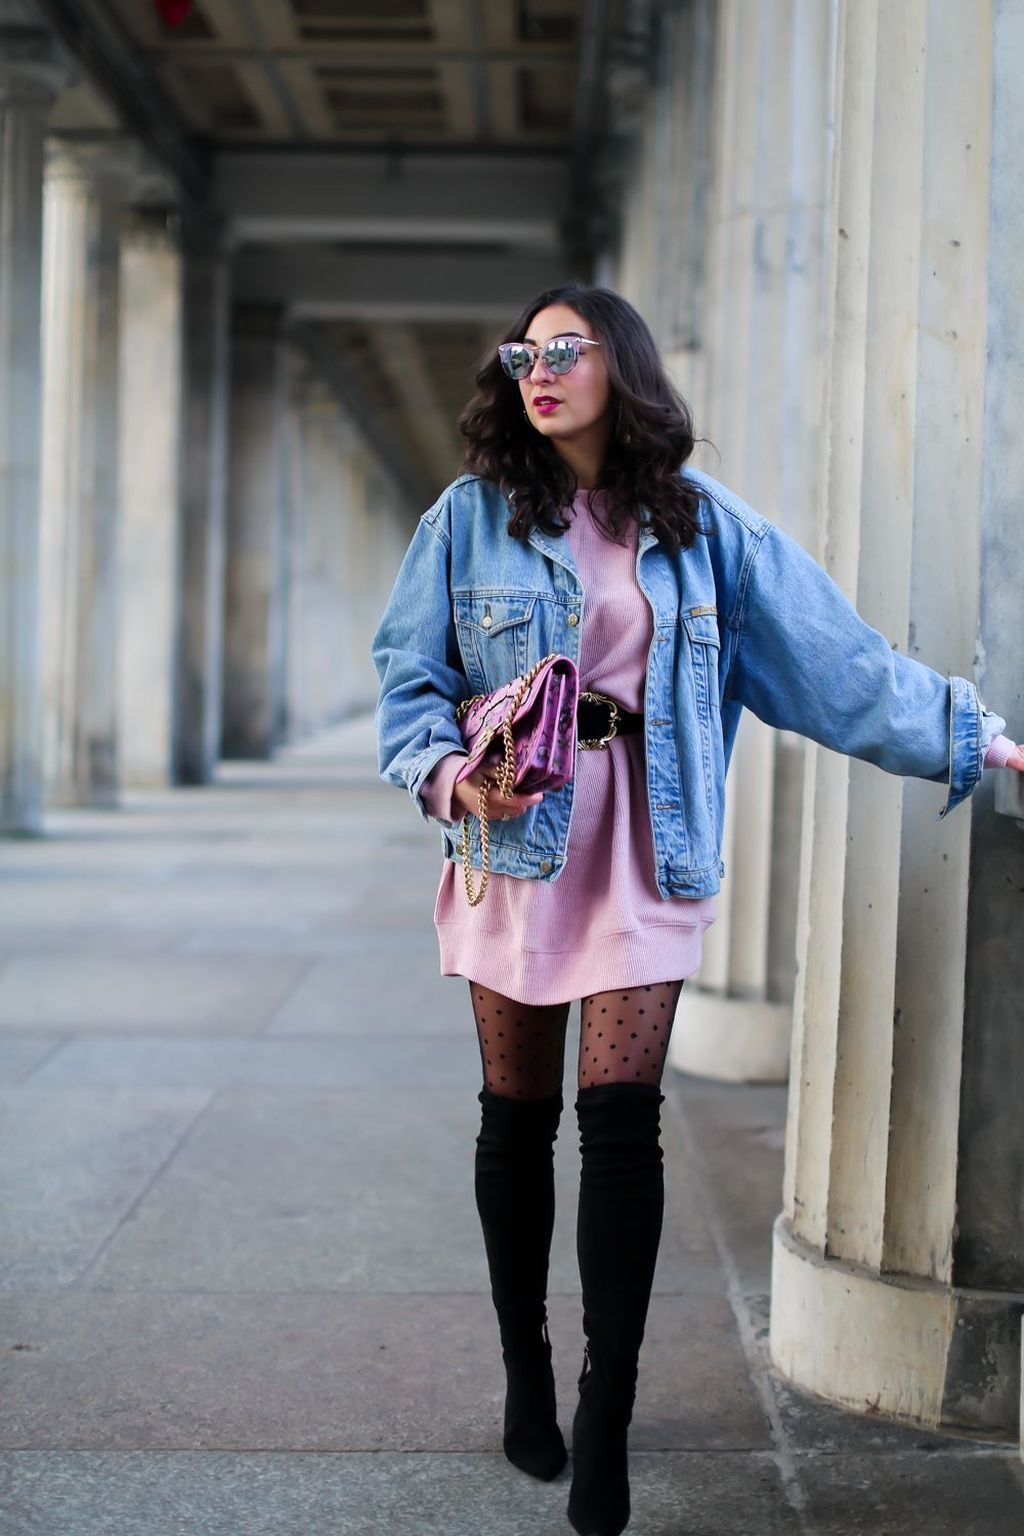 40 Awesome Winter Outfits Ideas With Denim Jacket - Trendwear4you.com  sc 1 st  Pinterest & 40 Awesome Winter Outfits Ideas With Denim Jacket | Denim jackets ...